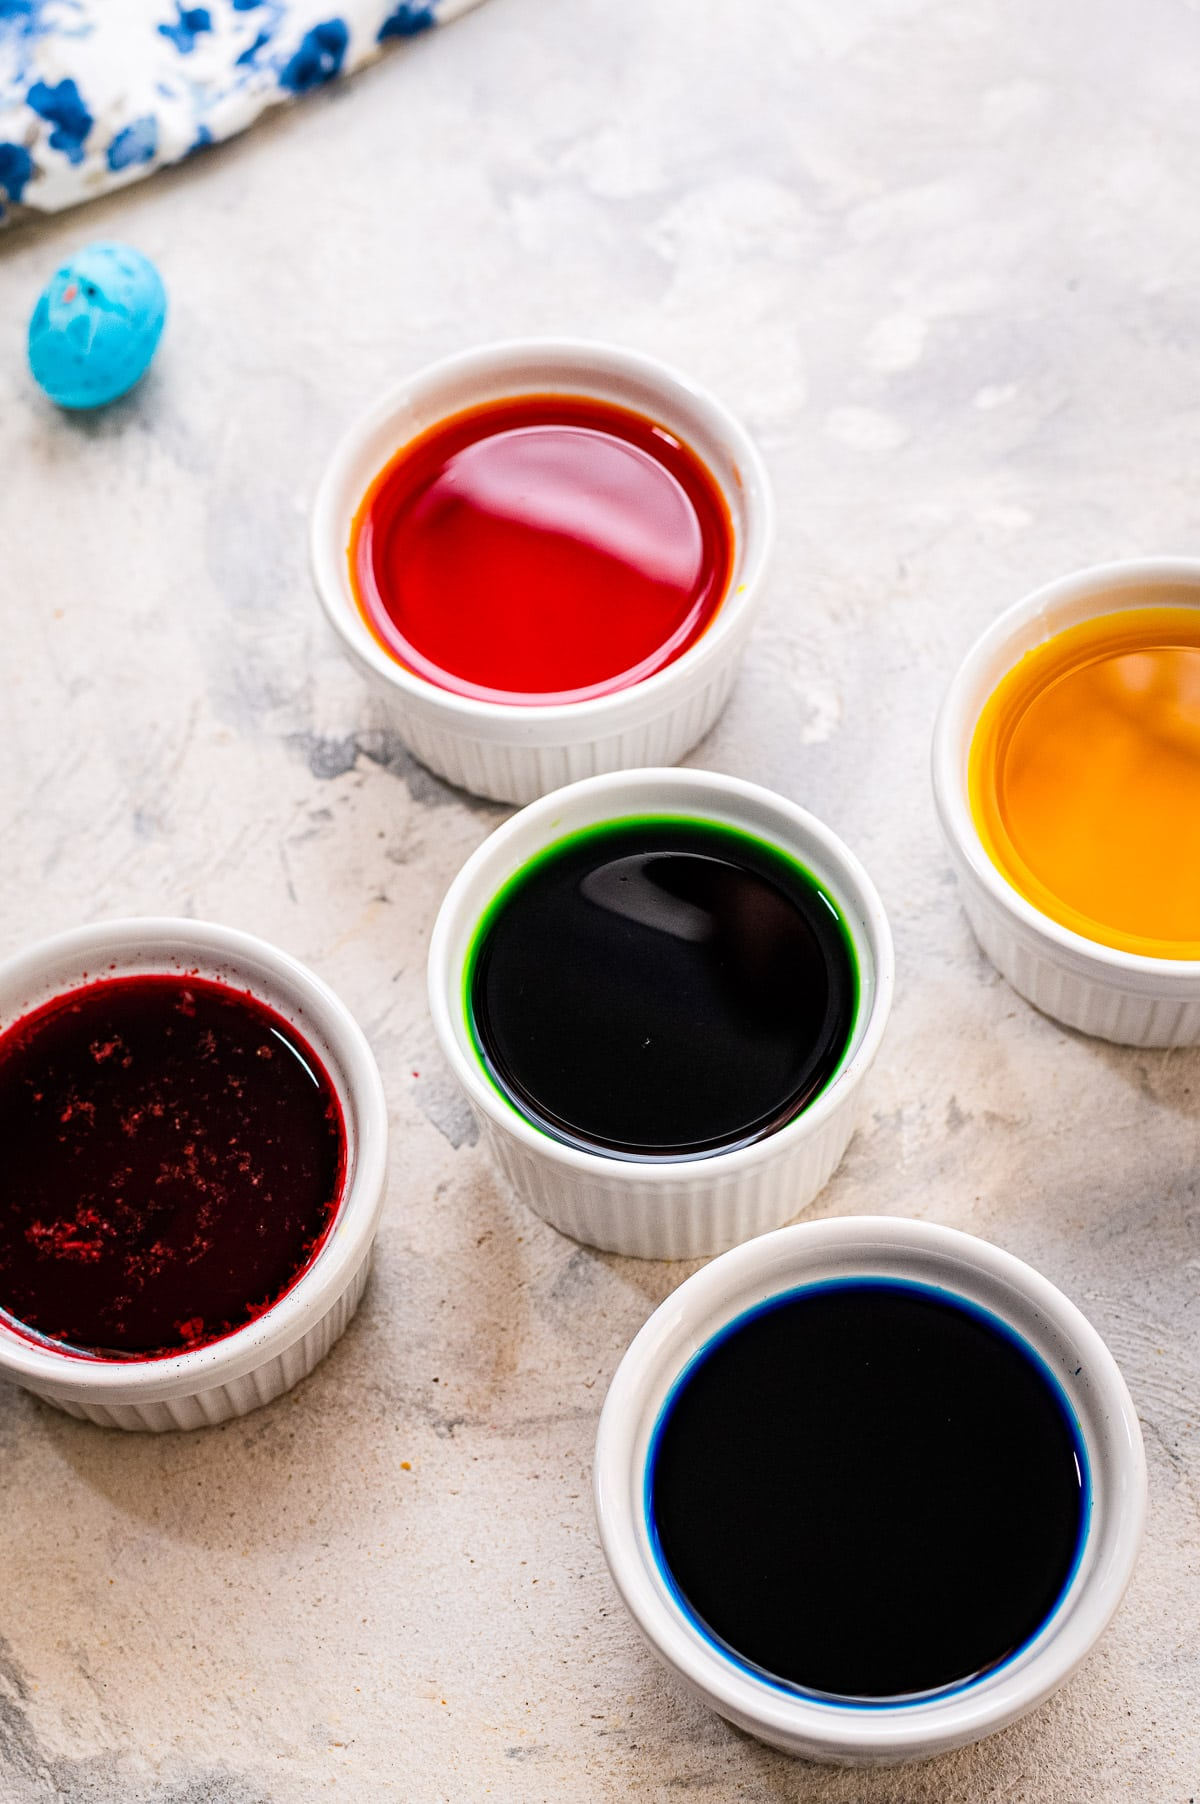 Bowls with water and dye for hard boiled eggs